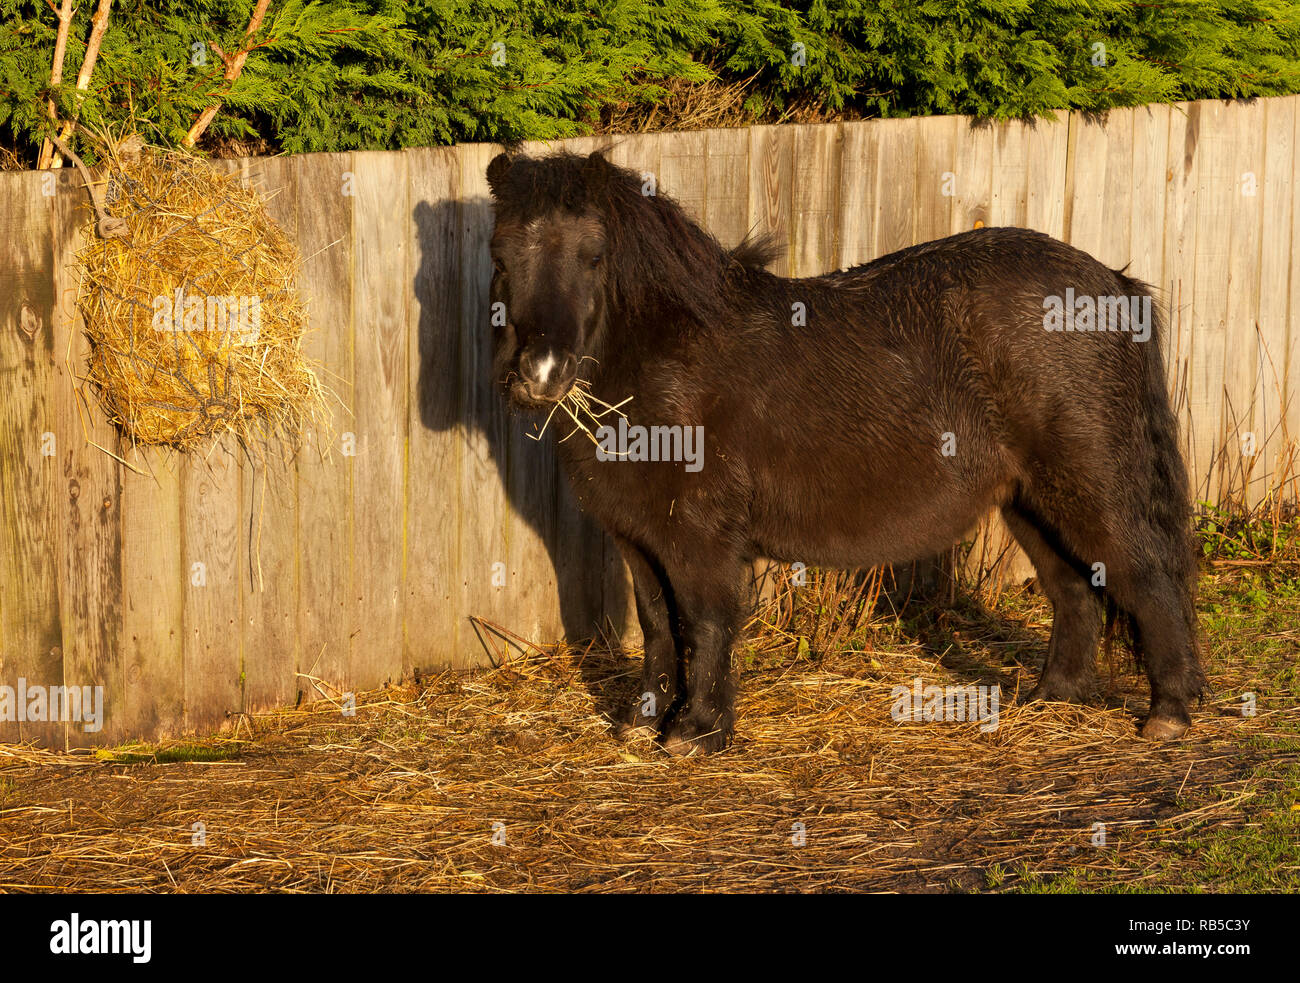 A black pony standing outdoors eating from a hay net - Stock Image